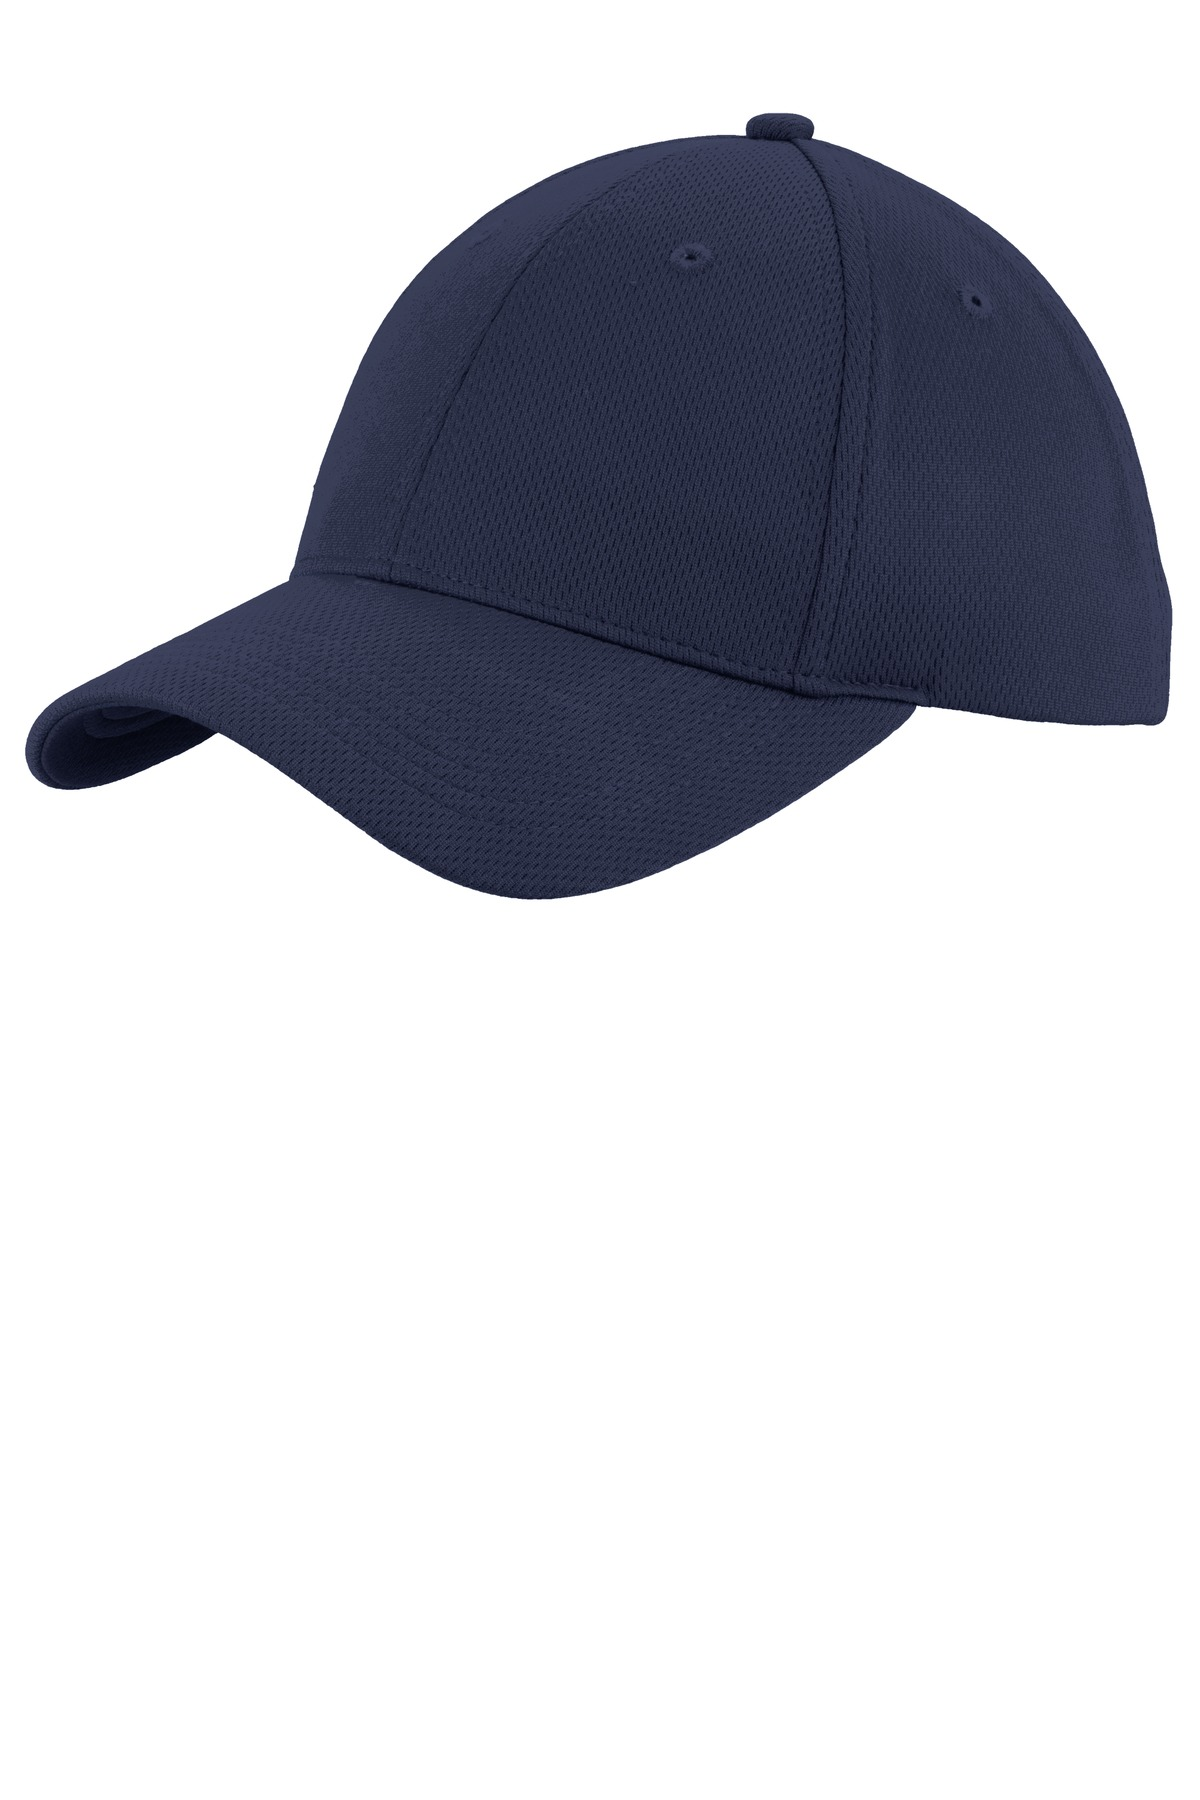 Sport-Tek ®  PosiCharge ®  RacerMesh ®  Cap. STC26 - True Navy